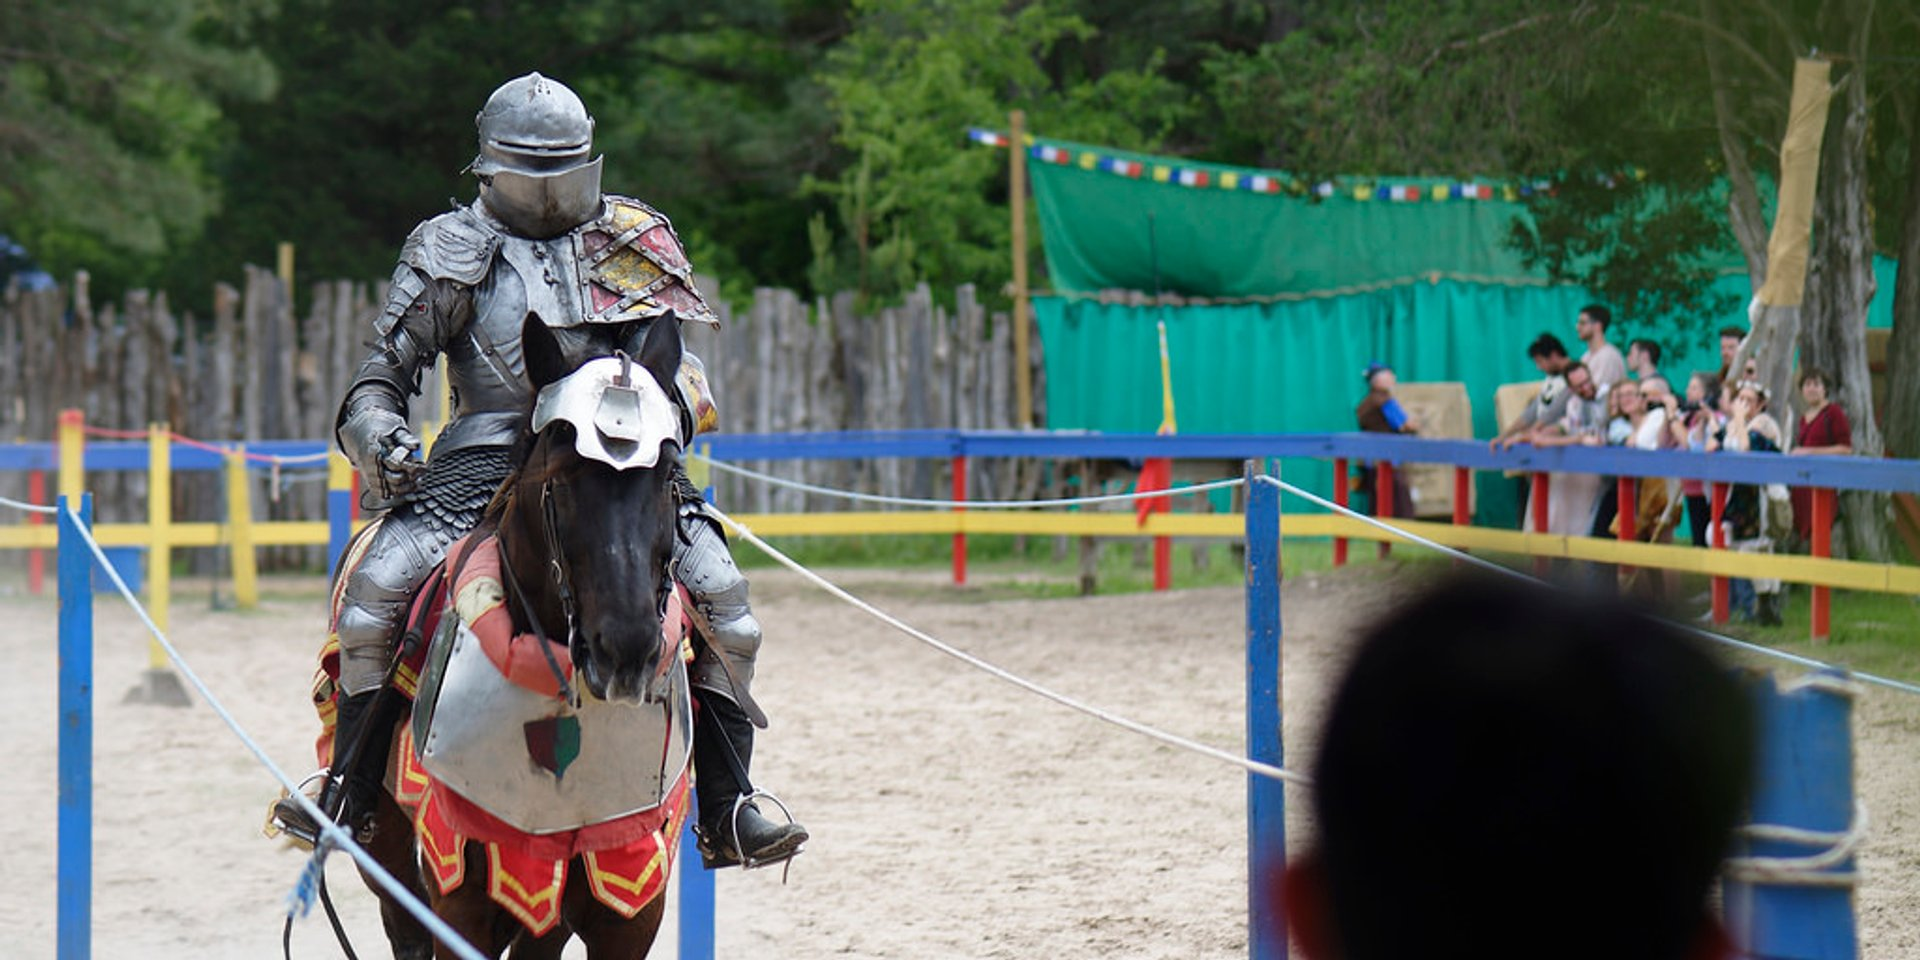 Hedge Knight or a jouster in the tournament 2020